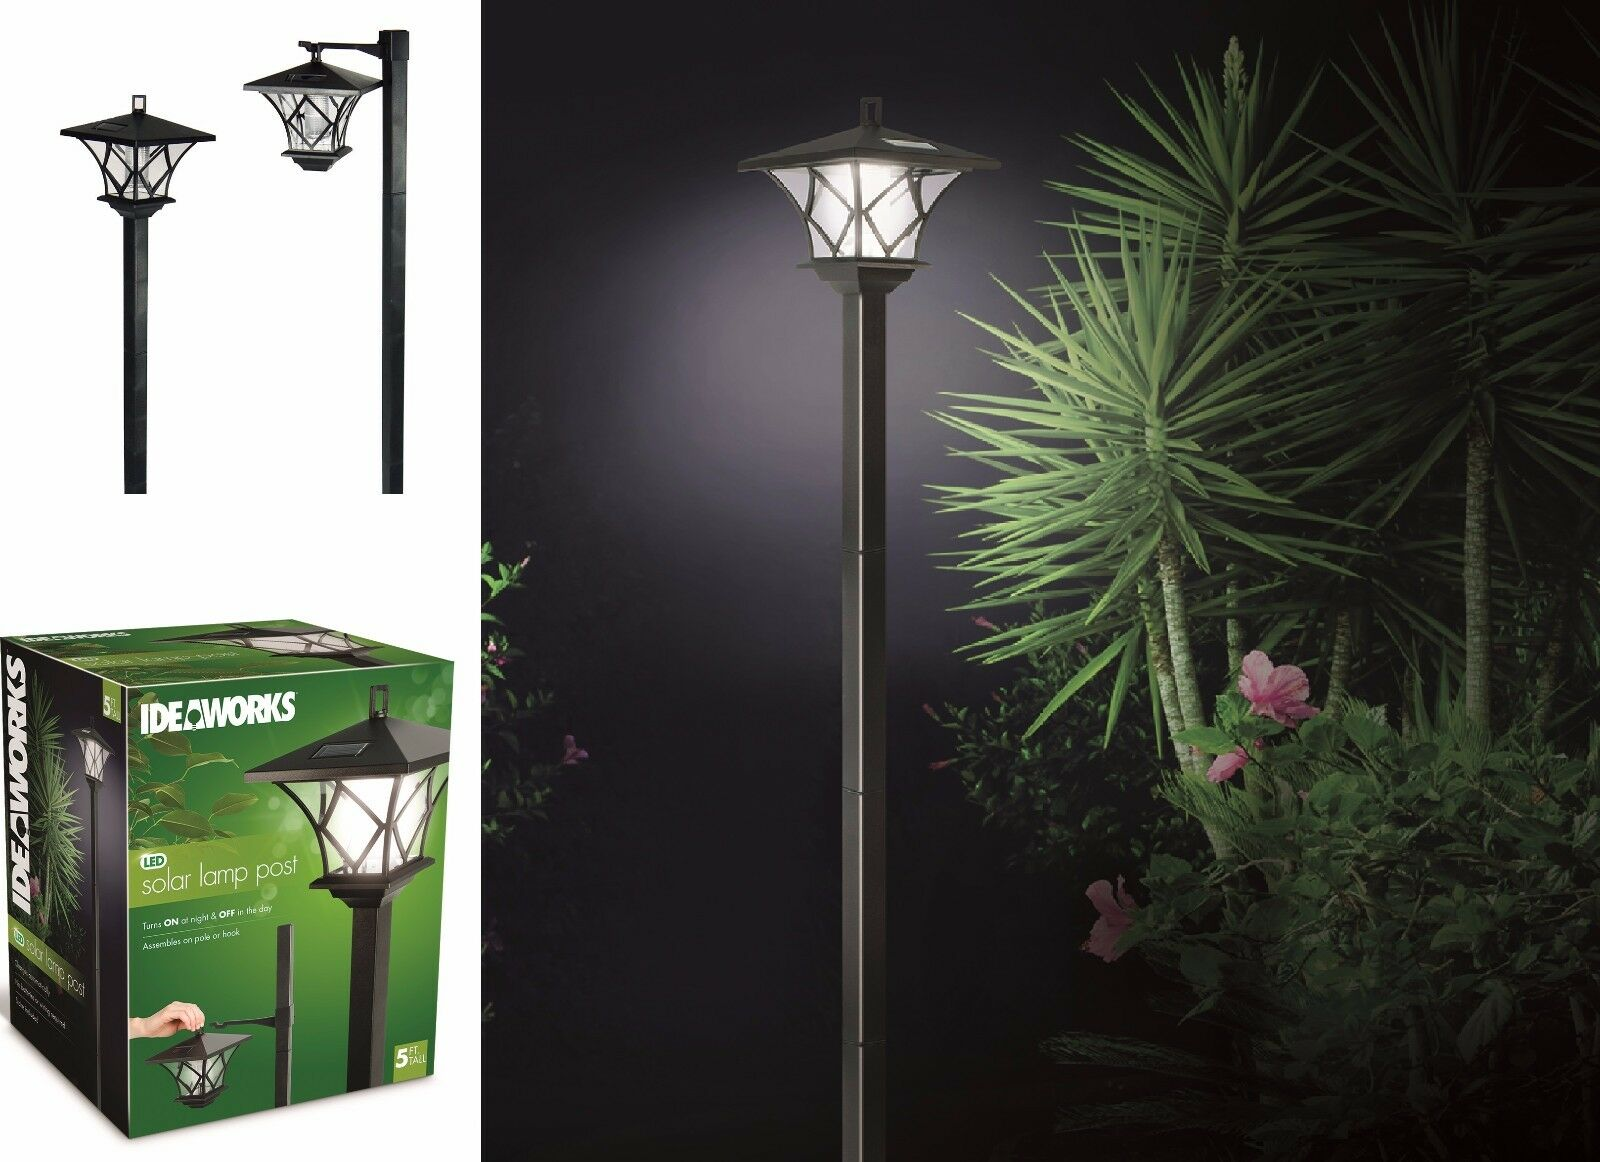 Outdoor Garden LED Antique Solar Landscape Path Light Lamp Post Dual ...